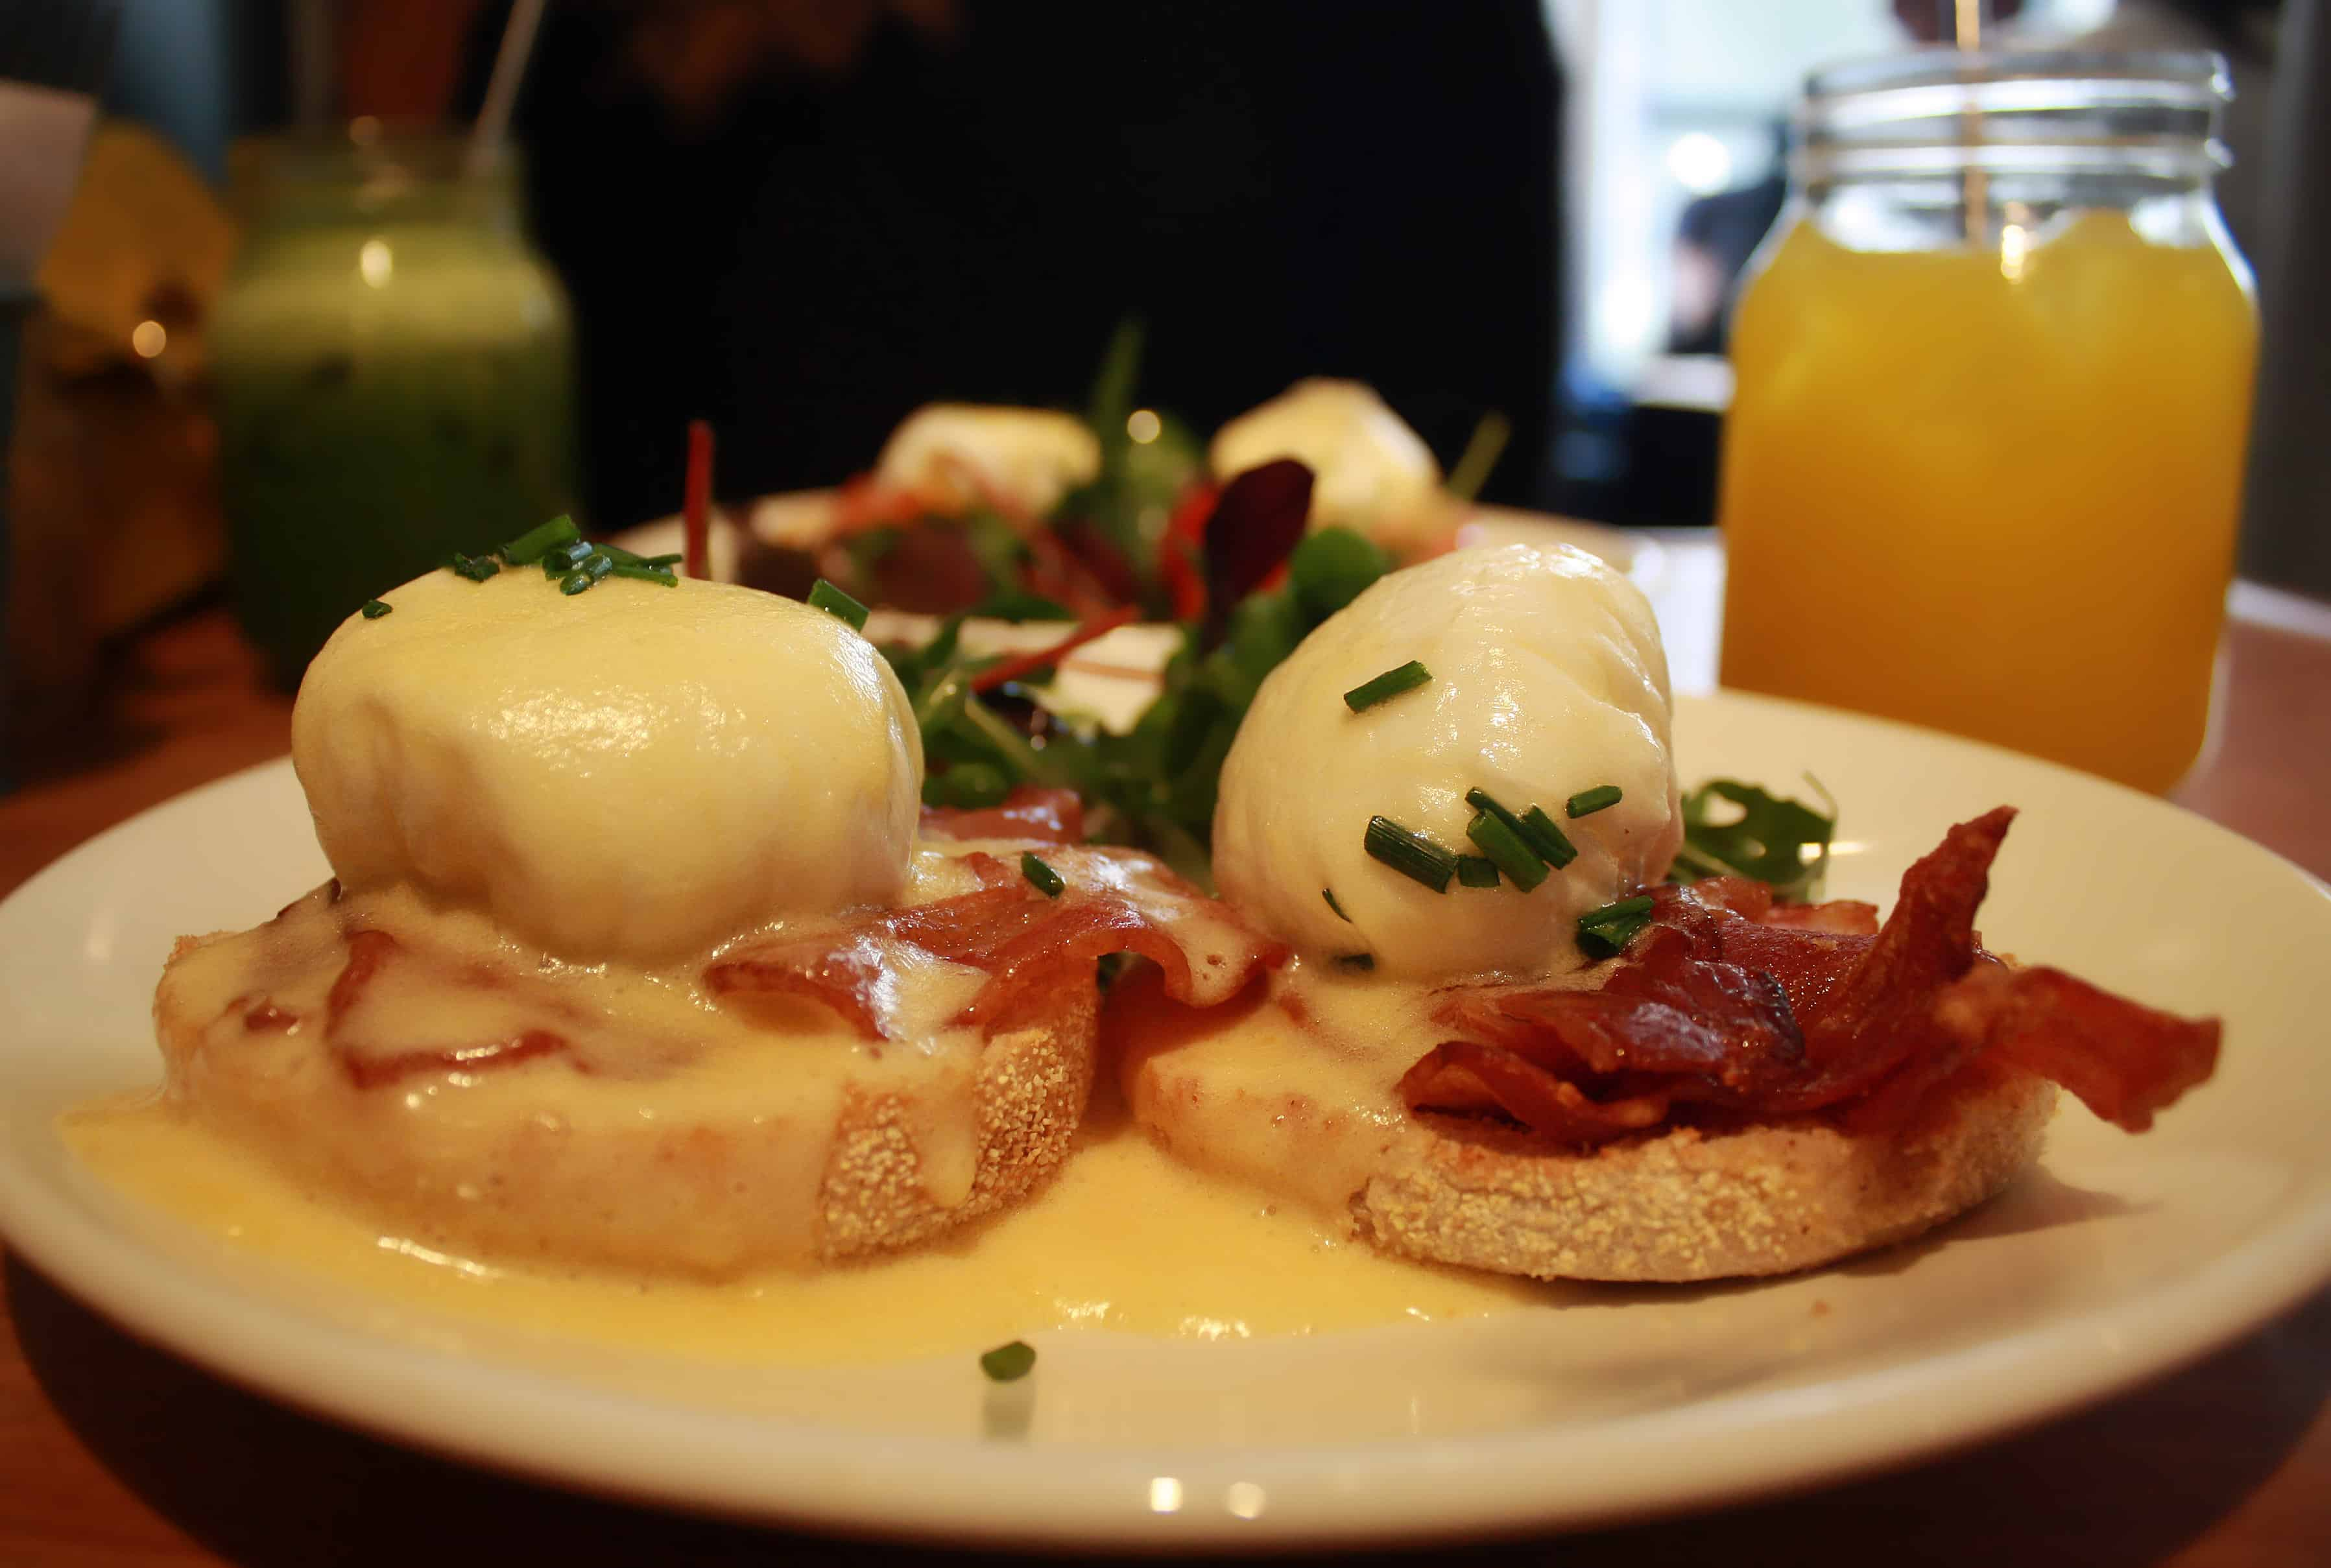 eggs benedict at Peck 47, Brussels